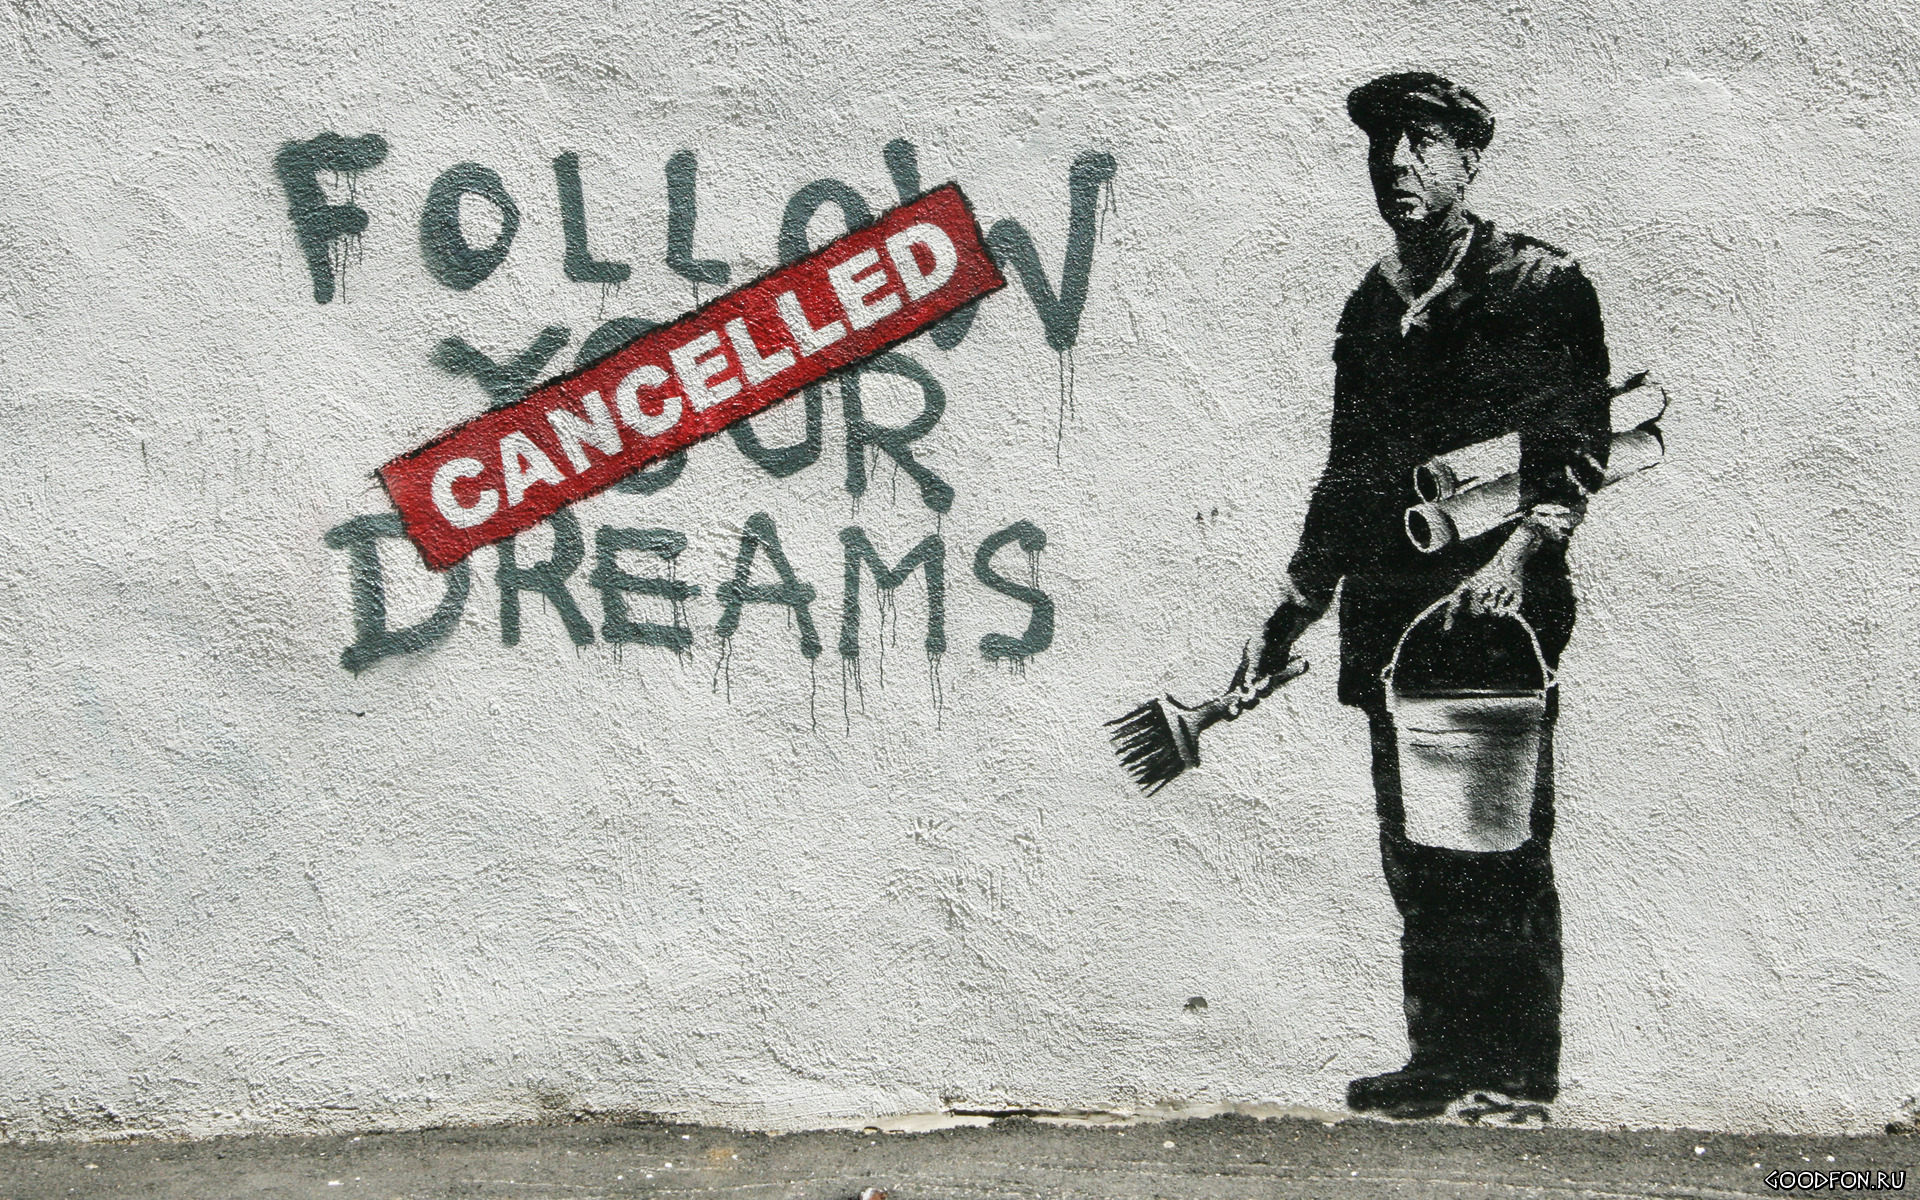 Dreams-cancelled